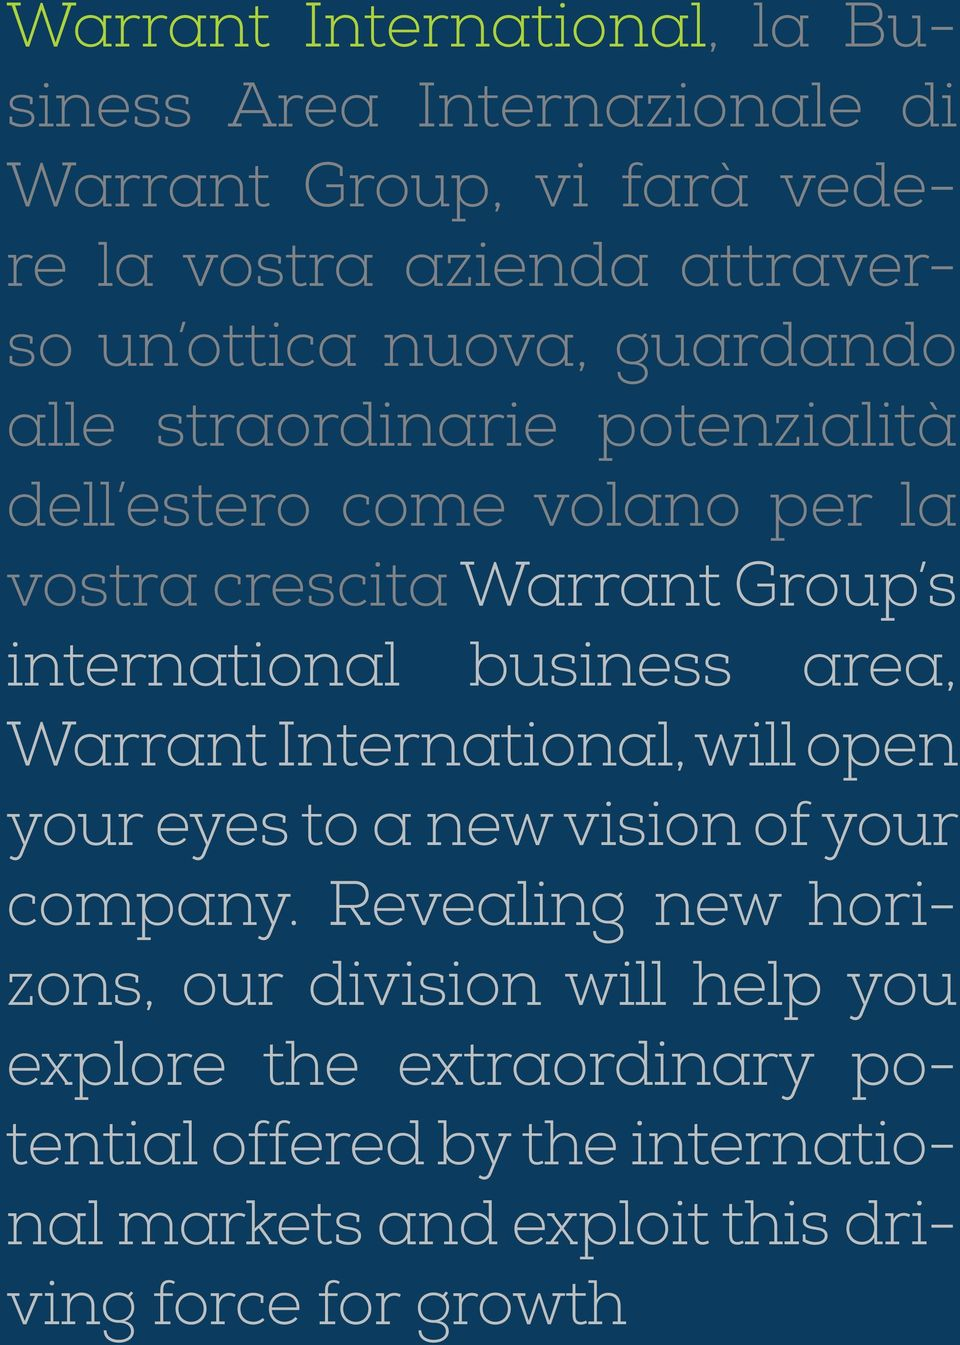 business area, Warrant International, will open your eyes to a new vision of your company.